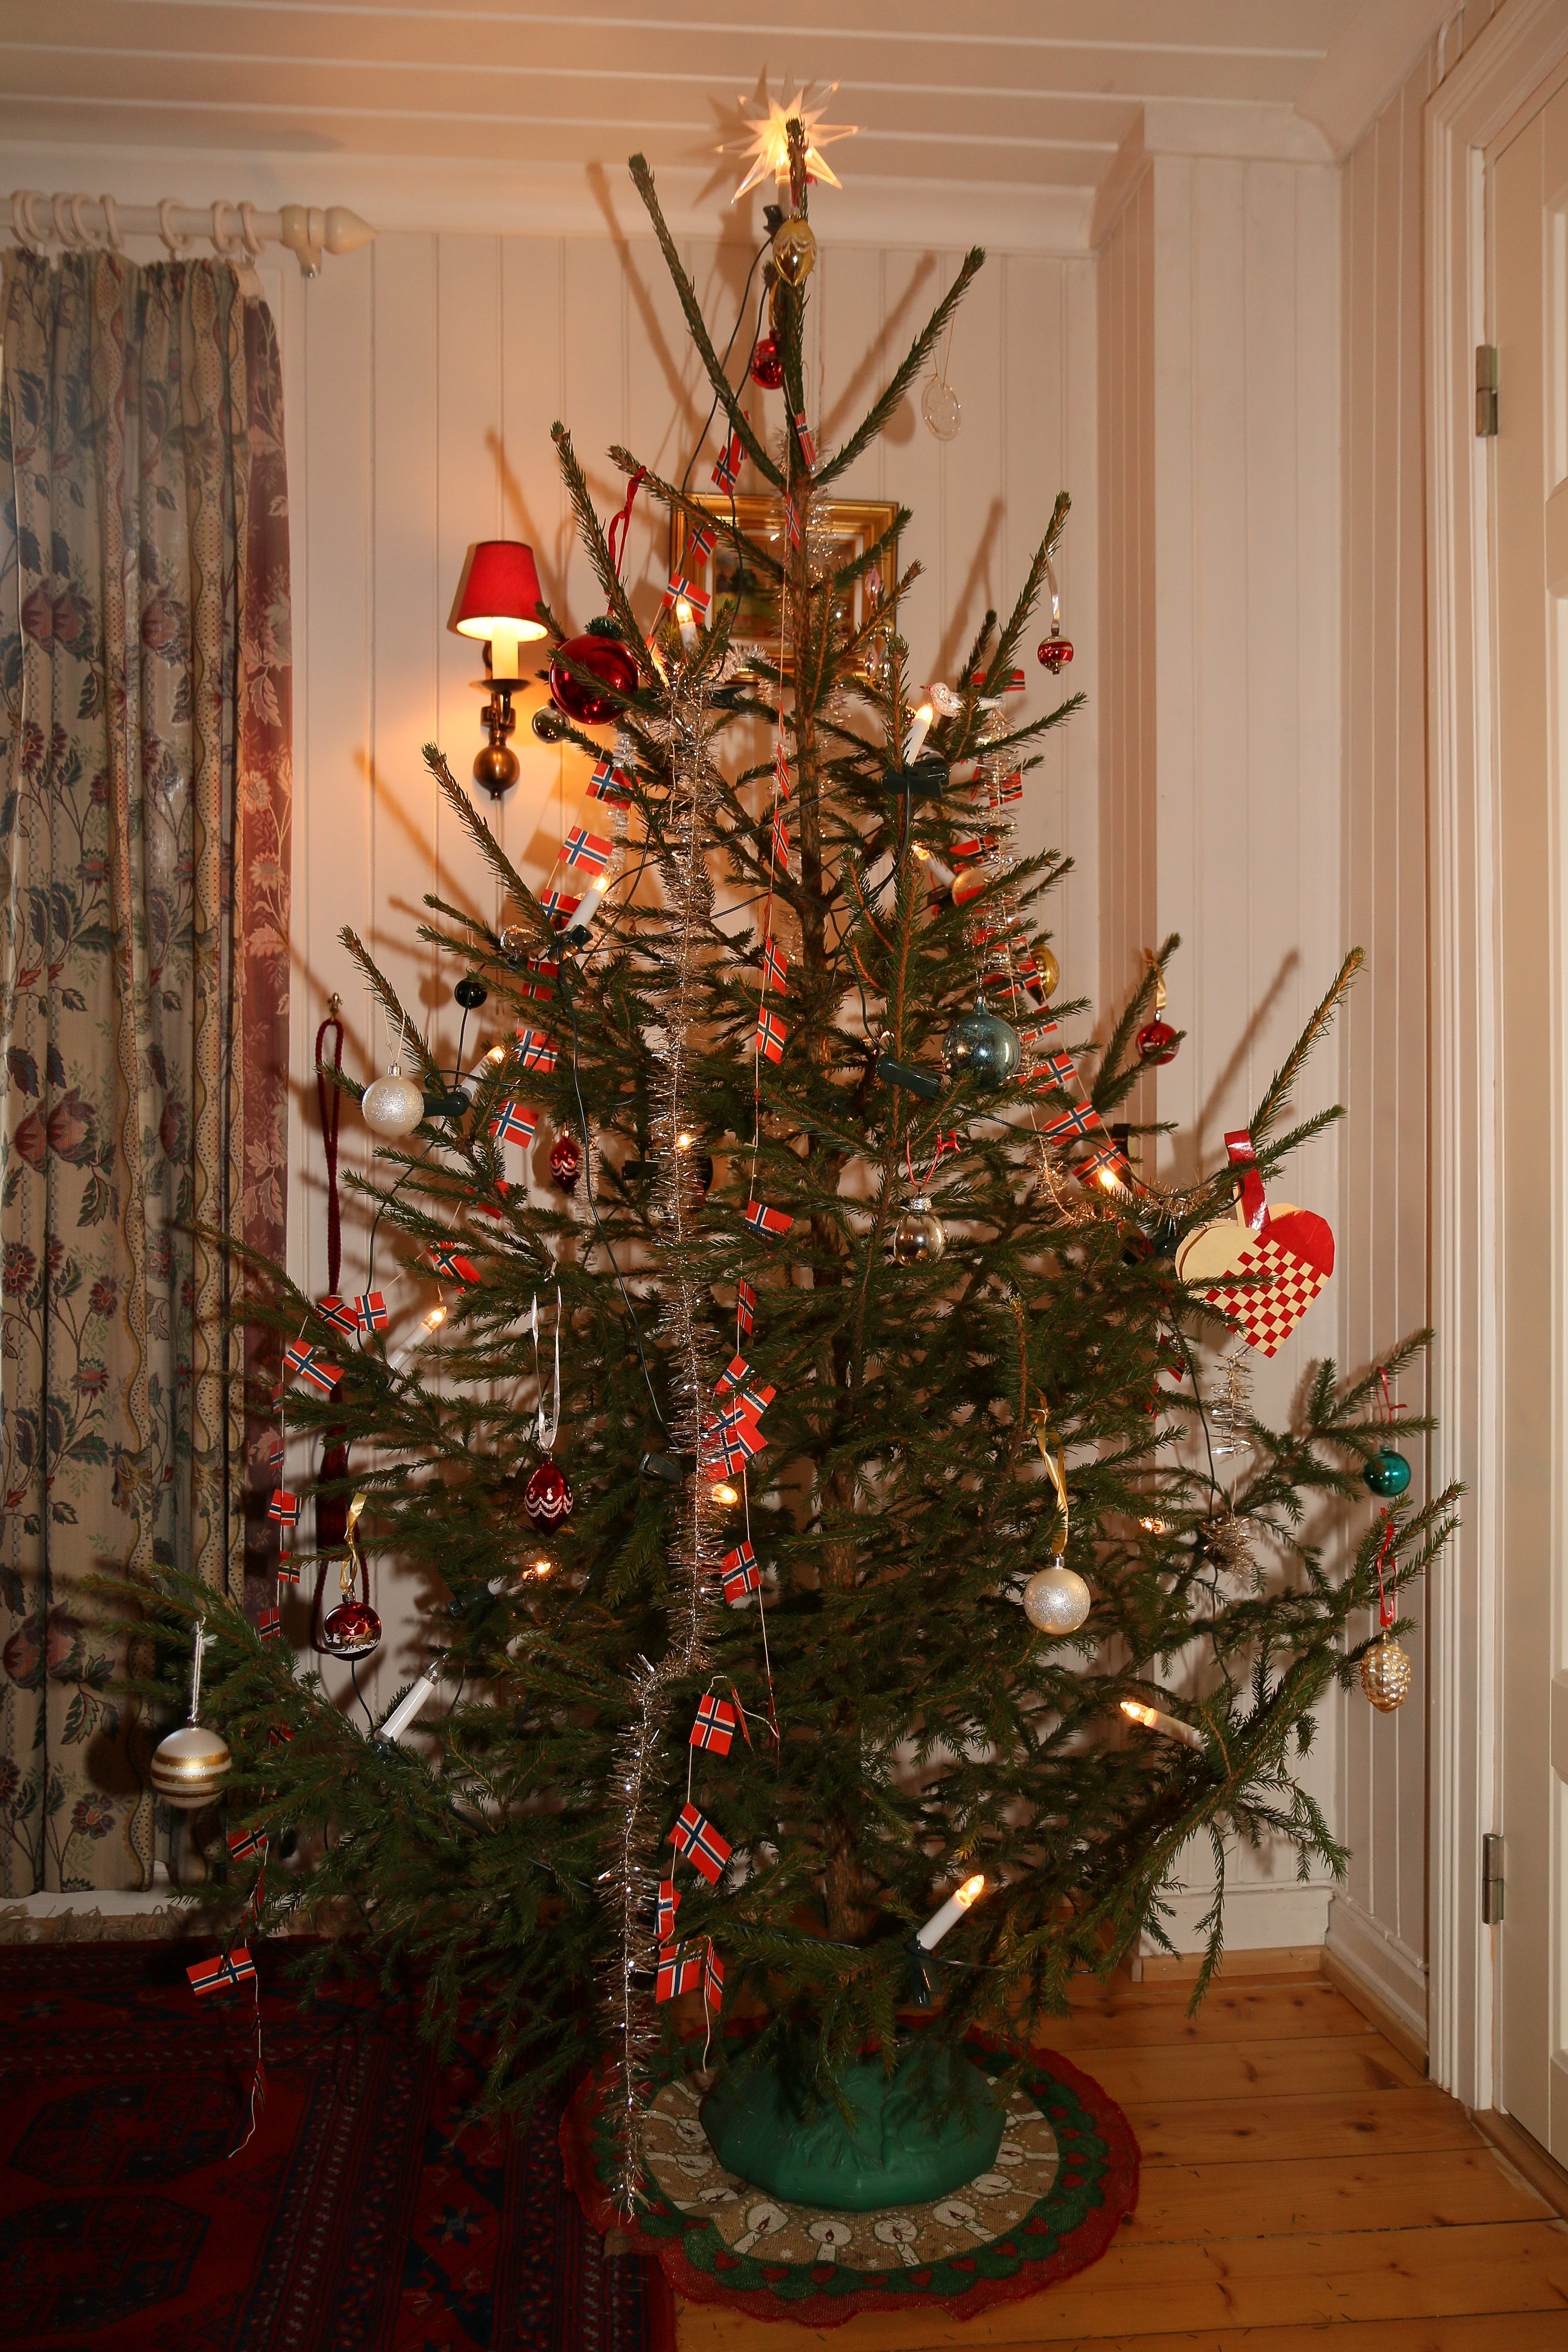 File:Christmas tree from Norwegian spruce - juletre.jpg - Wikimedia ...